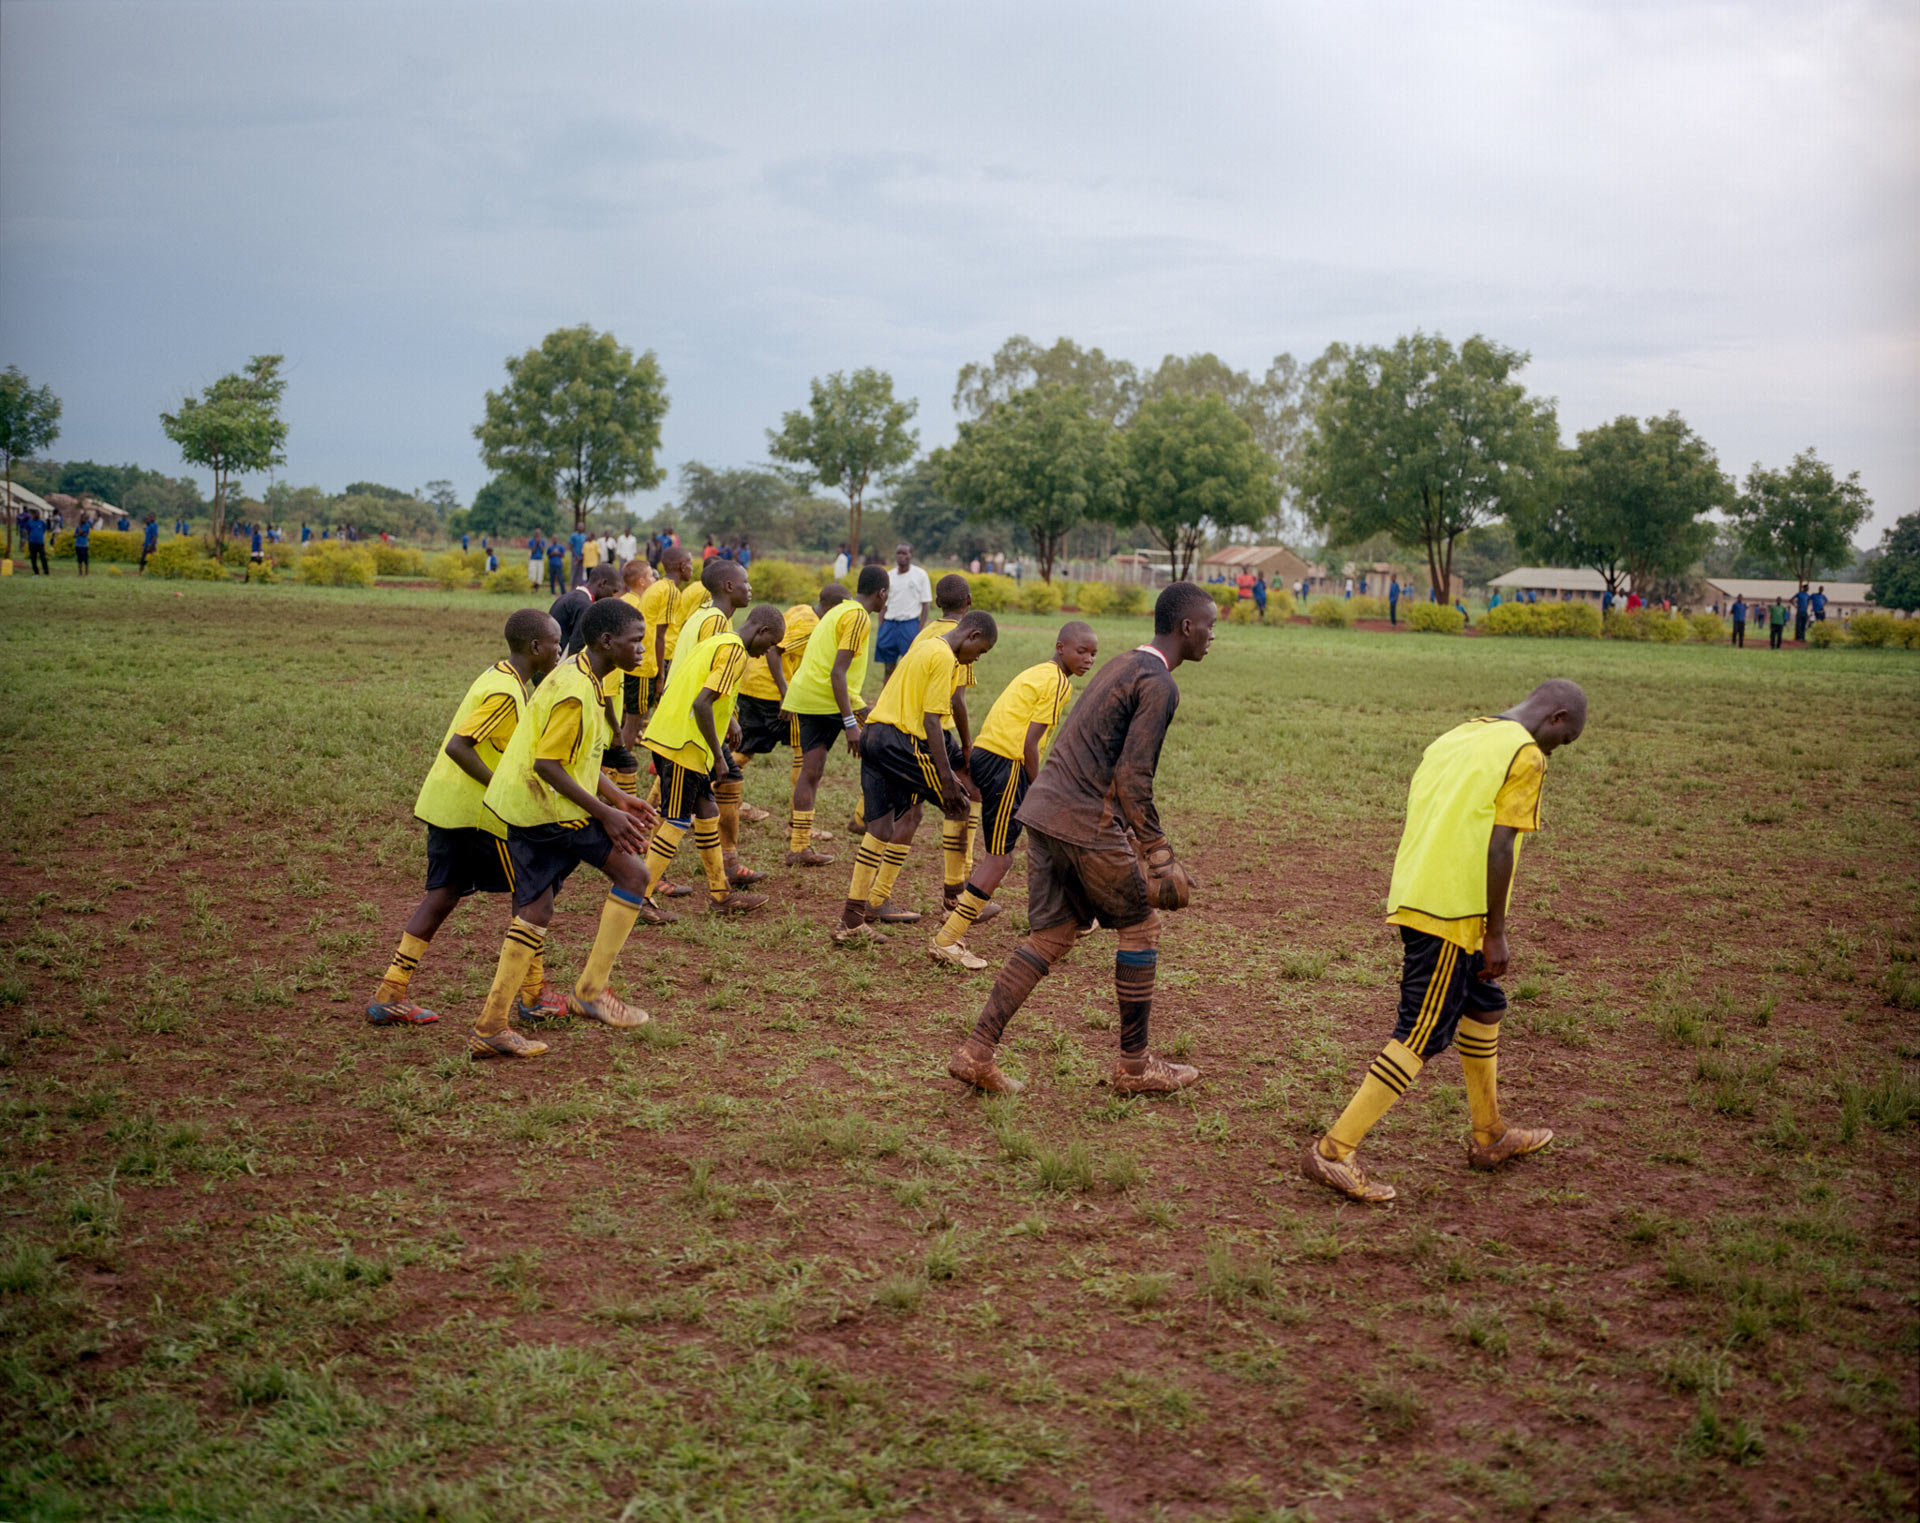 group of young black boys running in line and warming up for match wearing yellow soccer jersey by Alexi Hobbs in Uganda for Football for Good with Sportsnet